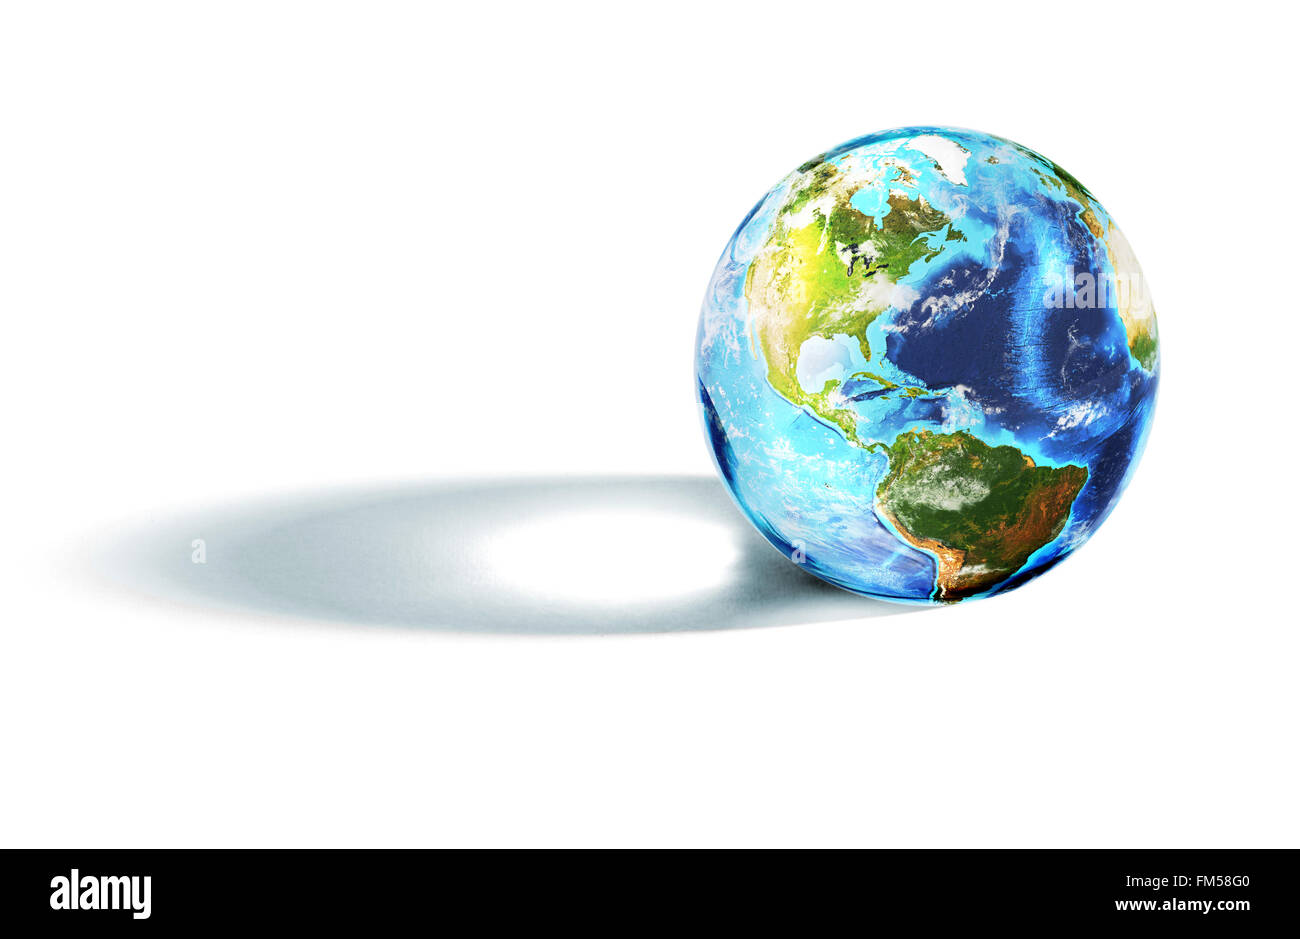 Colorful world globe representing the Earth casting an artistic side shadow - Stock Image